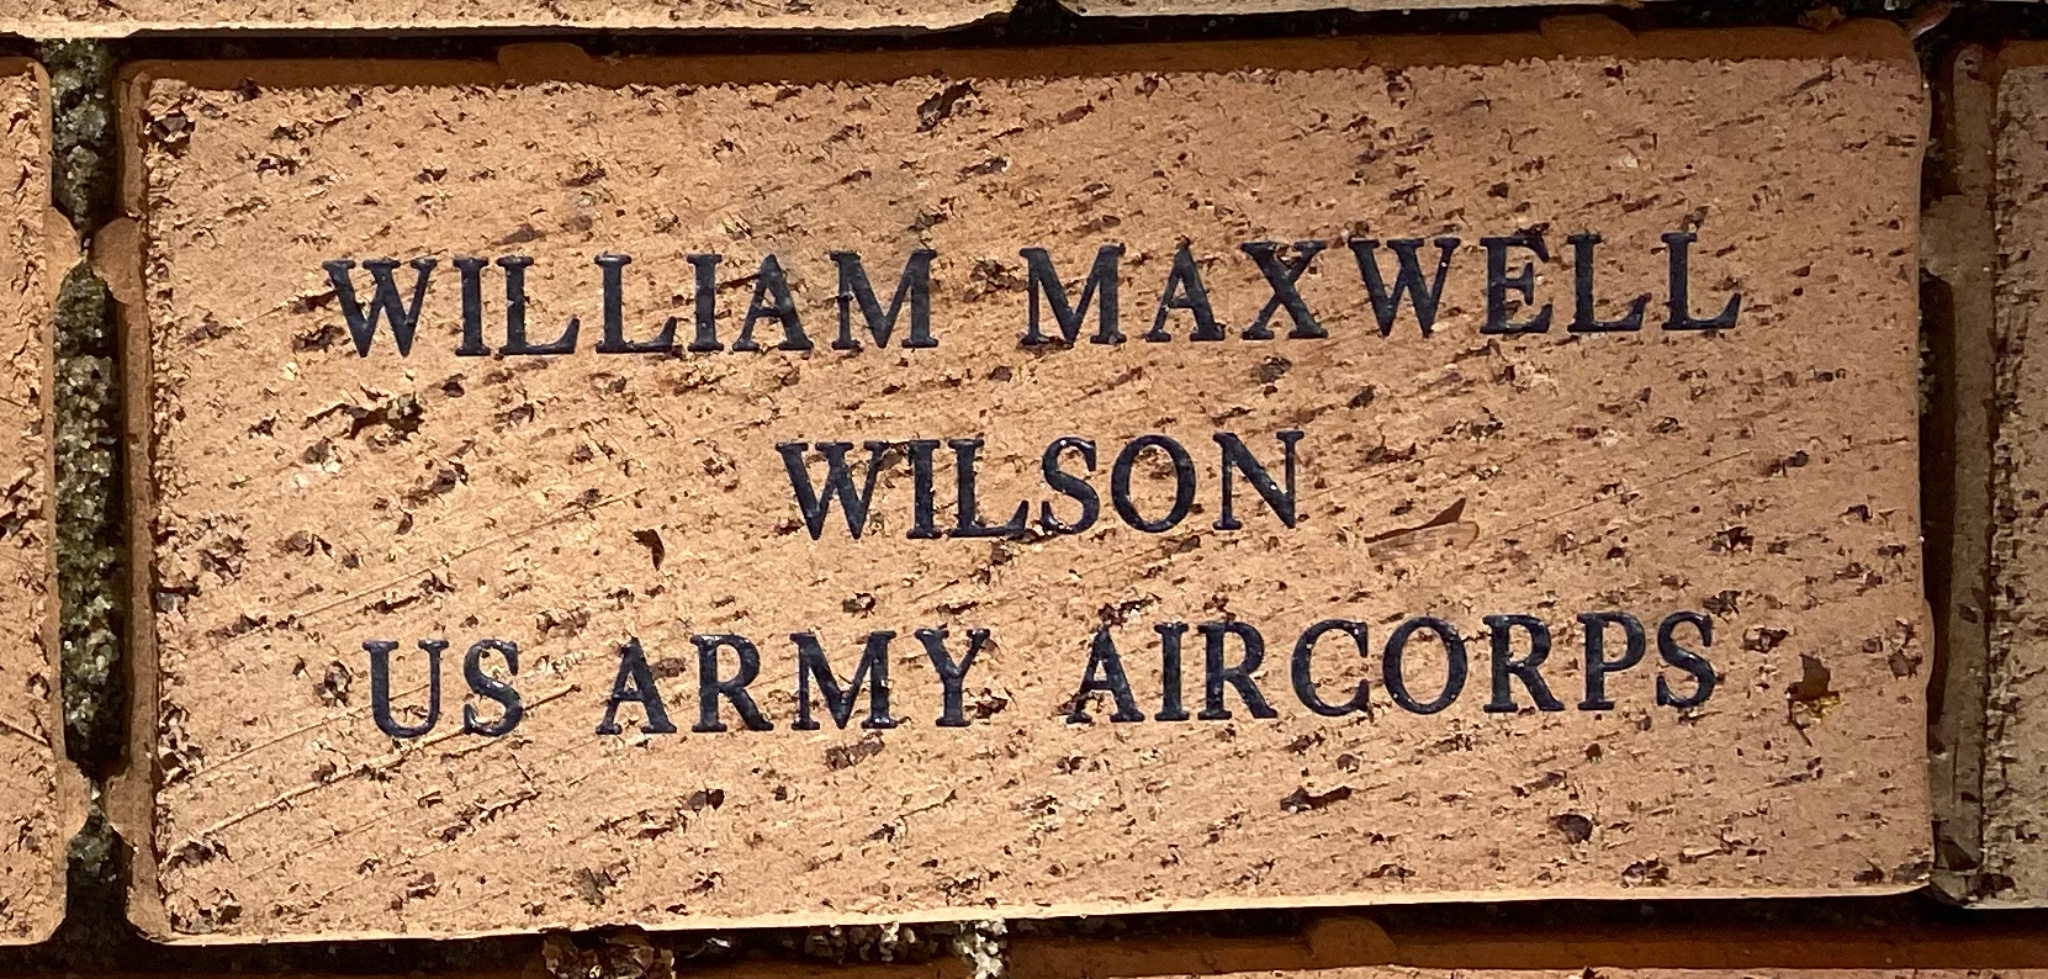 WILLIAM MAXWELL WILSON US ARMY AIRCORPS